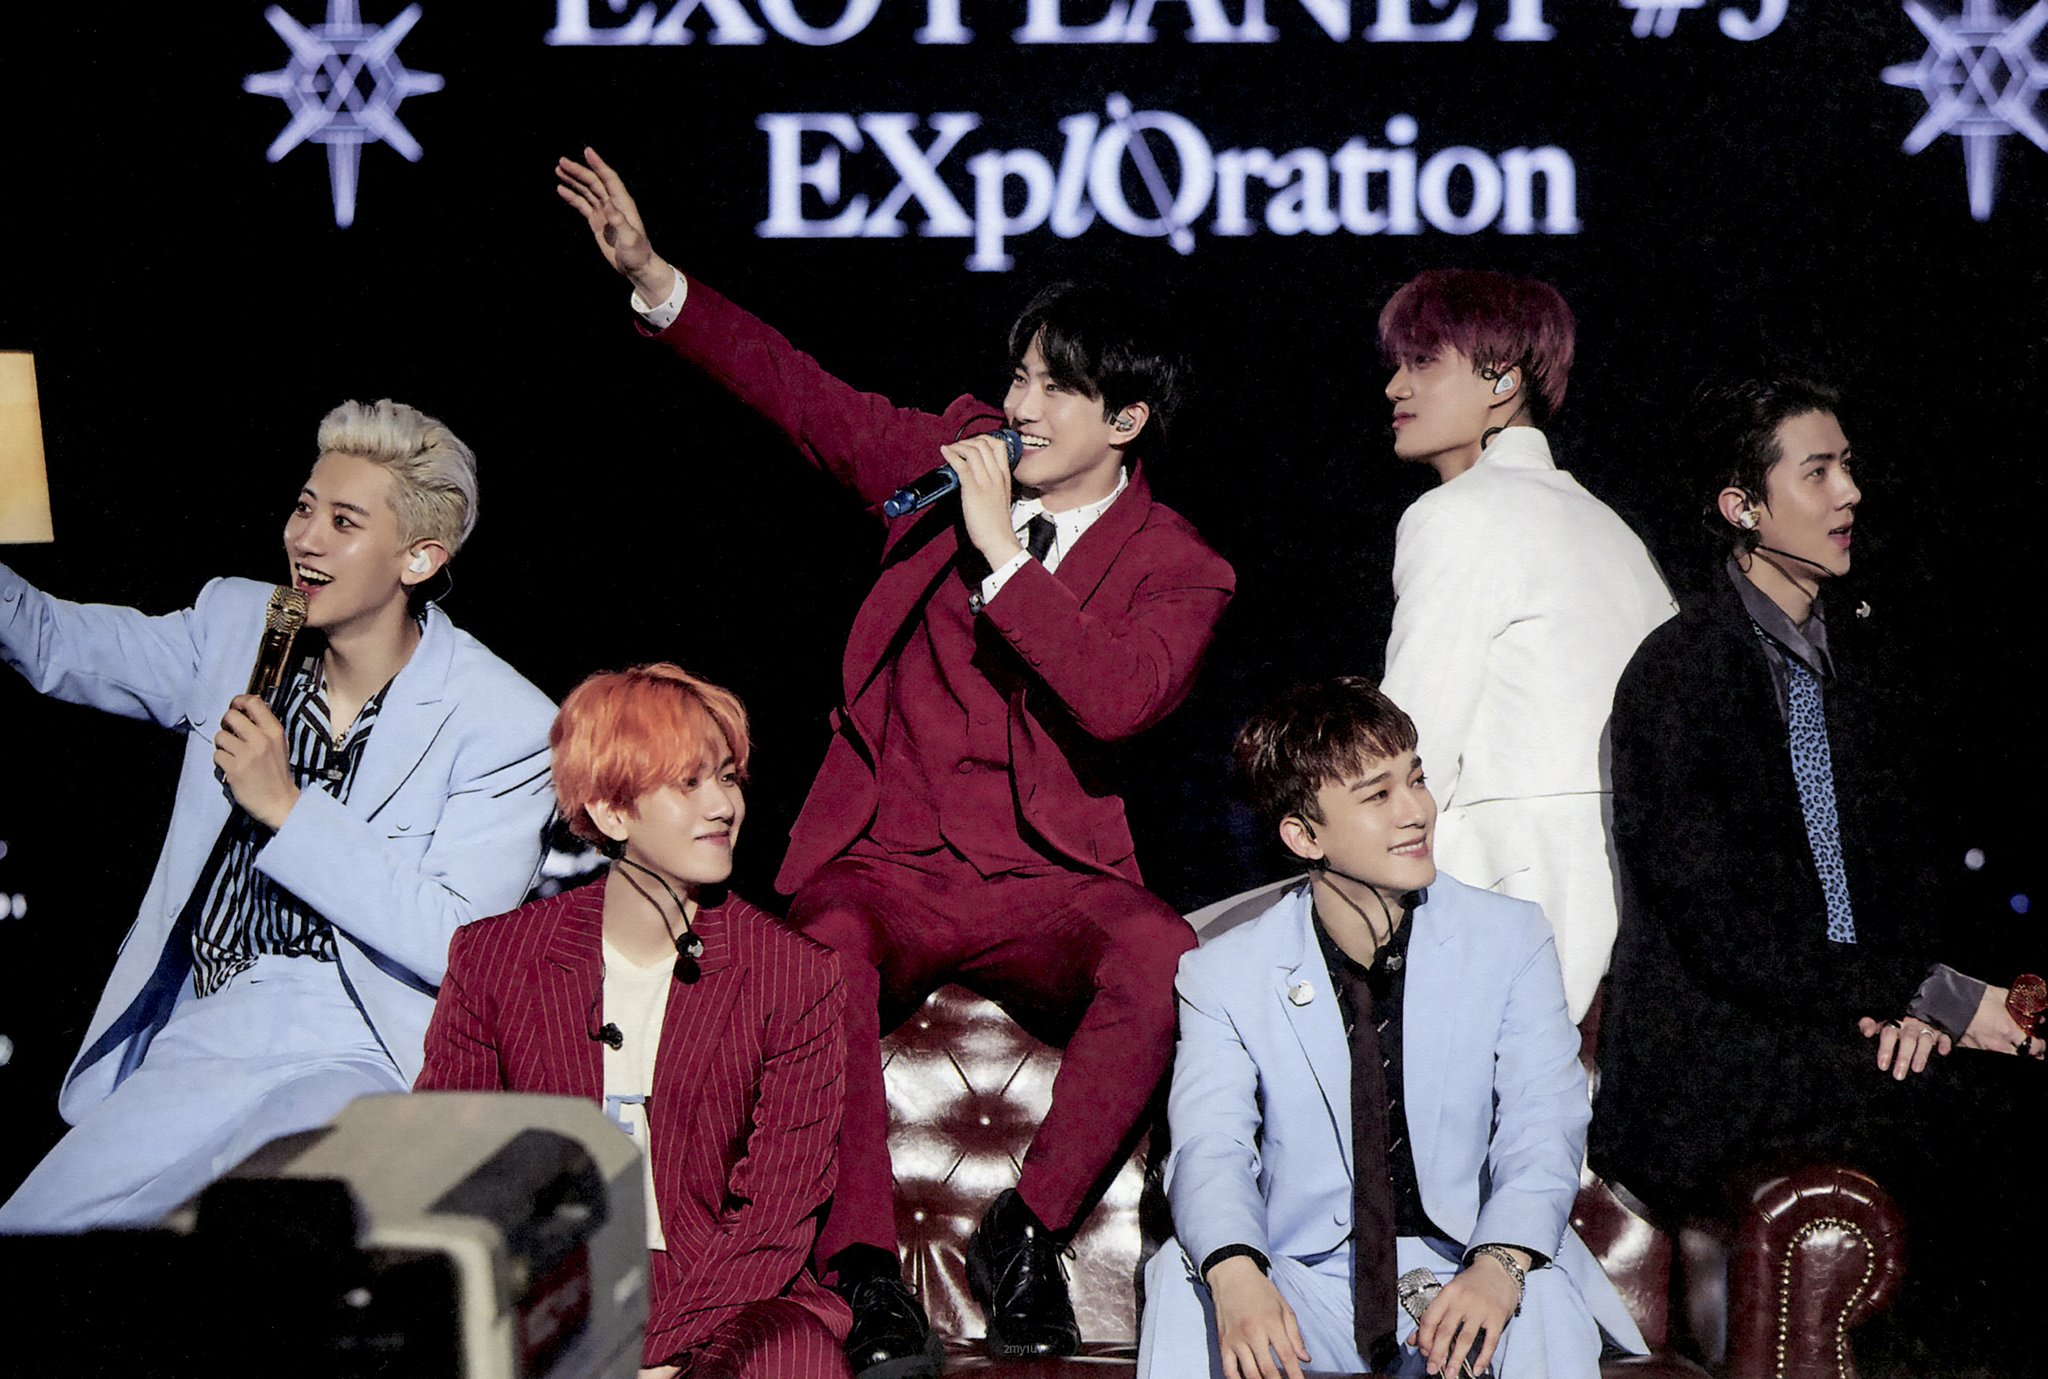 COMPILATION] EXPLORATION LIVE ALBUM - EXO MEMBERS MESSAGE TO THEMSELVES,  STAFF, EXO-L AND EXO ~ netizens on EXO ♡